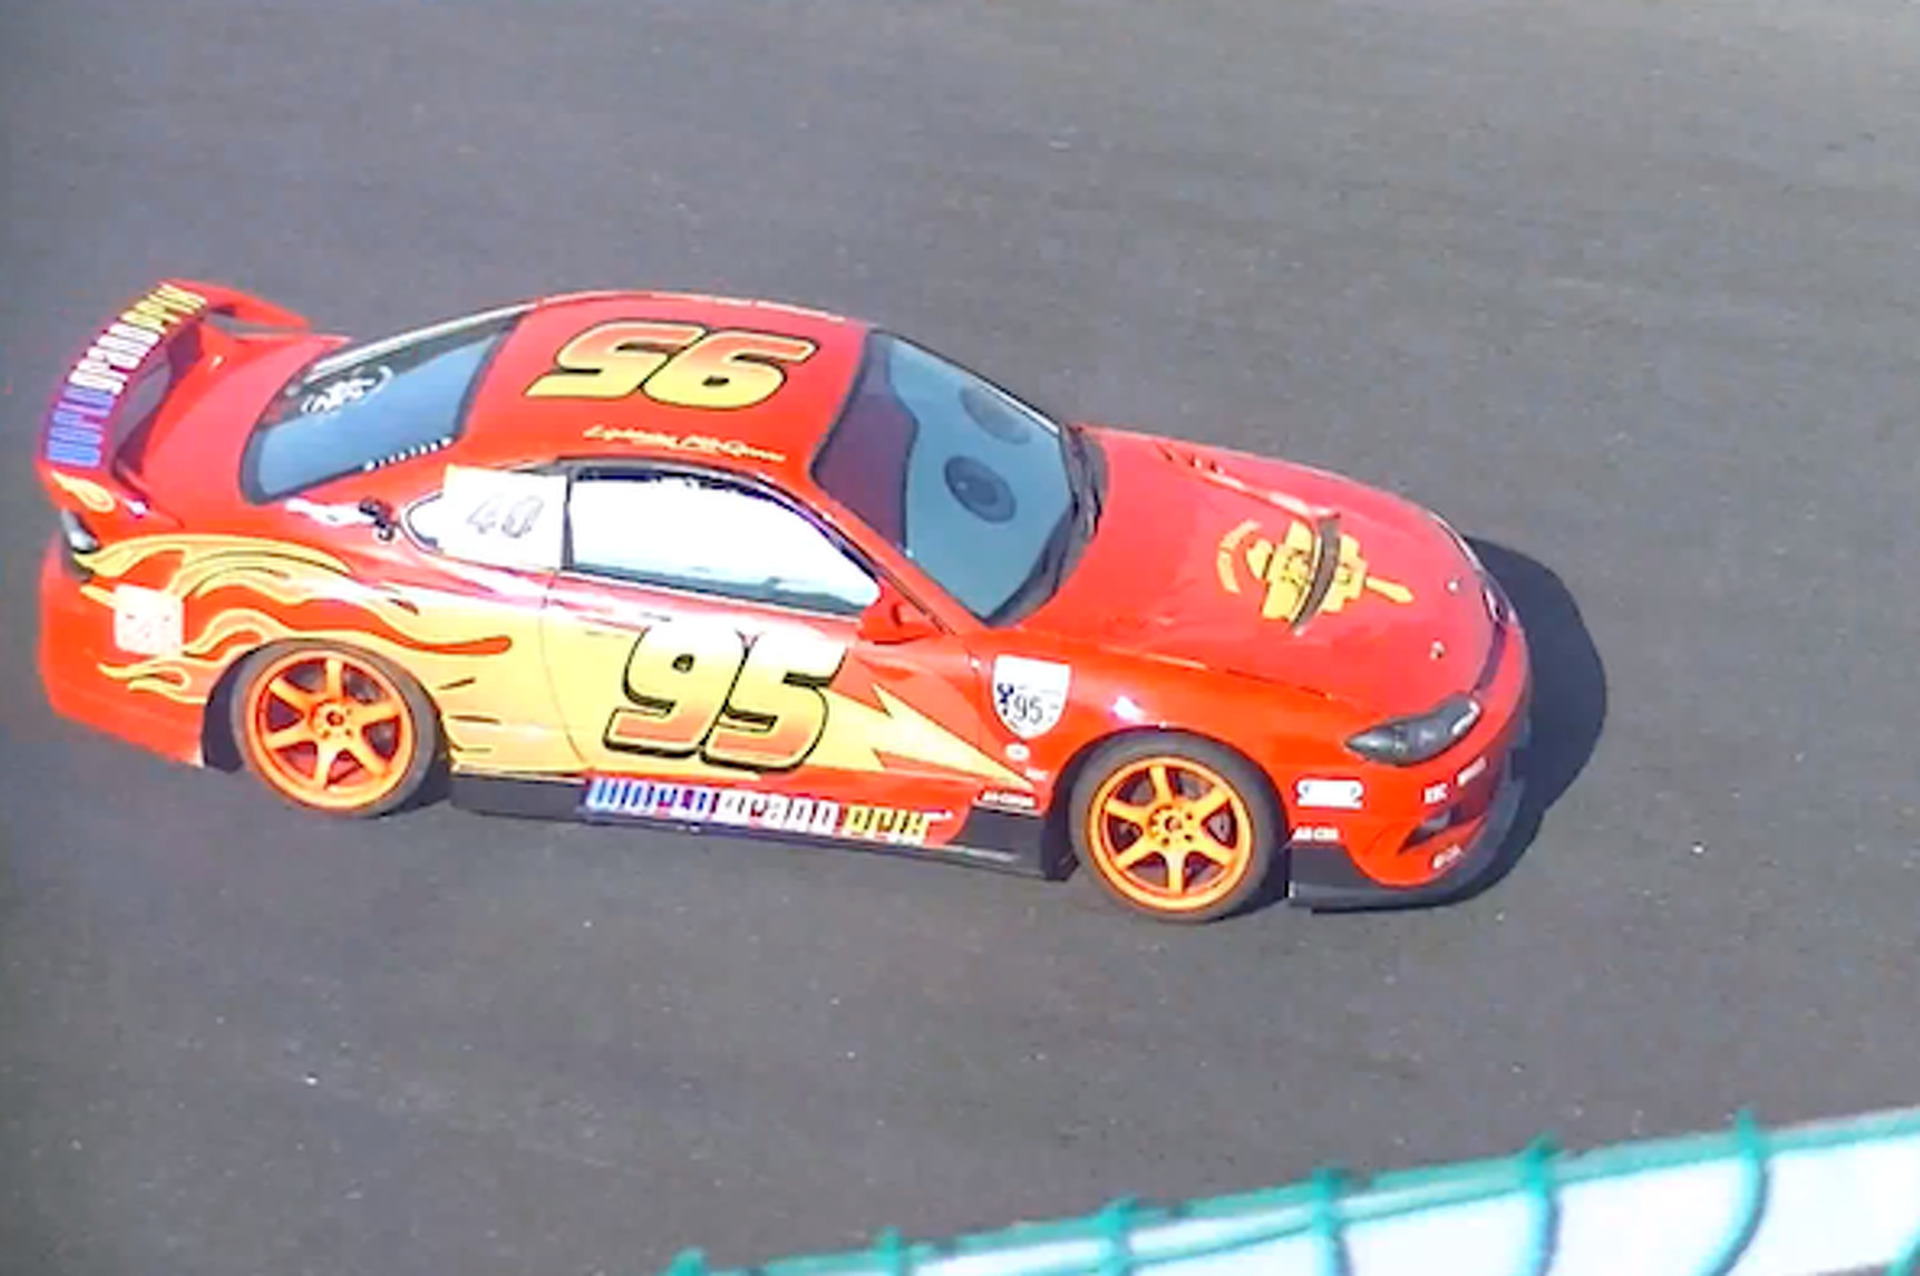 Watch Lightning McQueen in a Japanese Drift Race